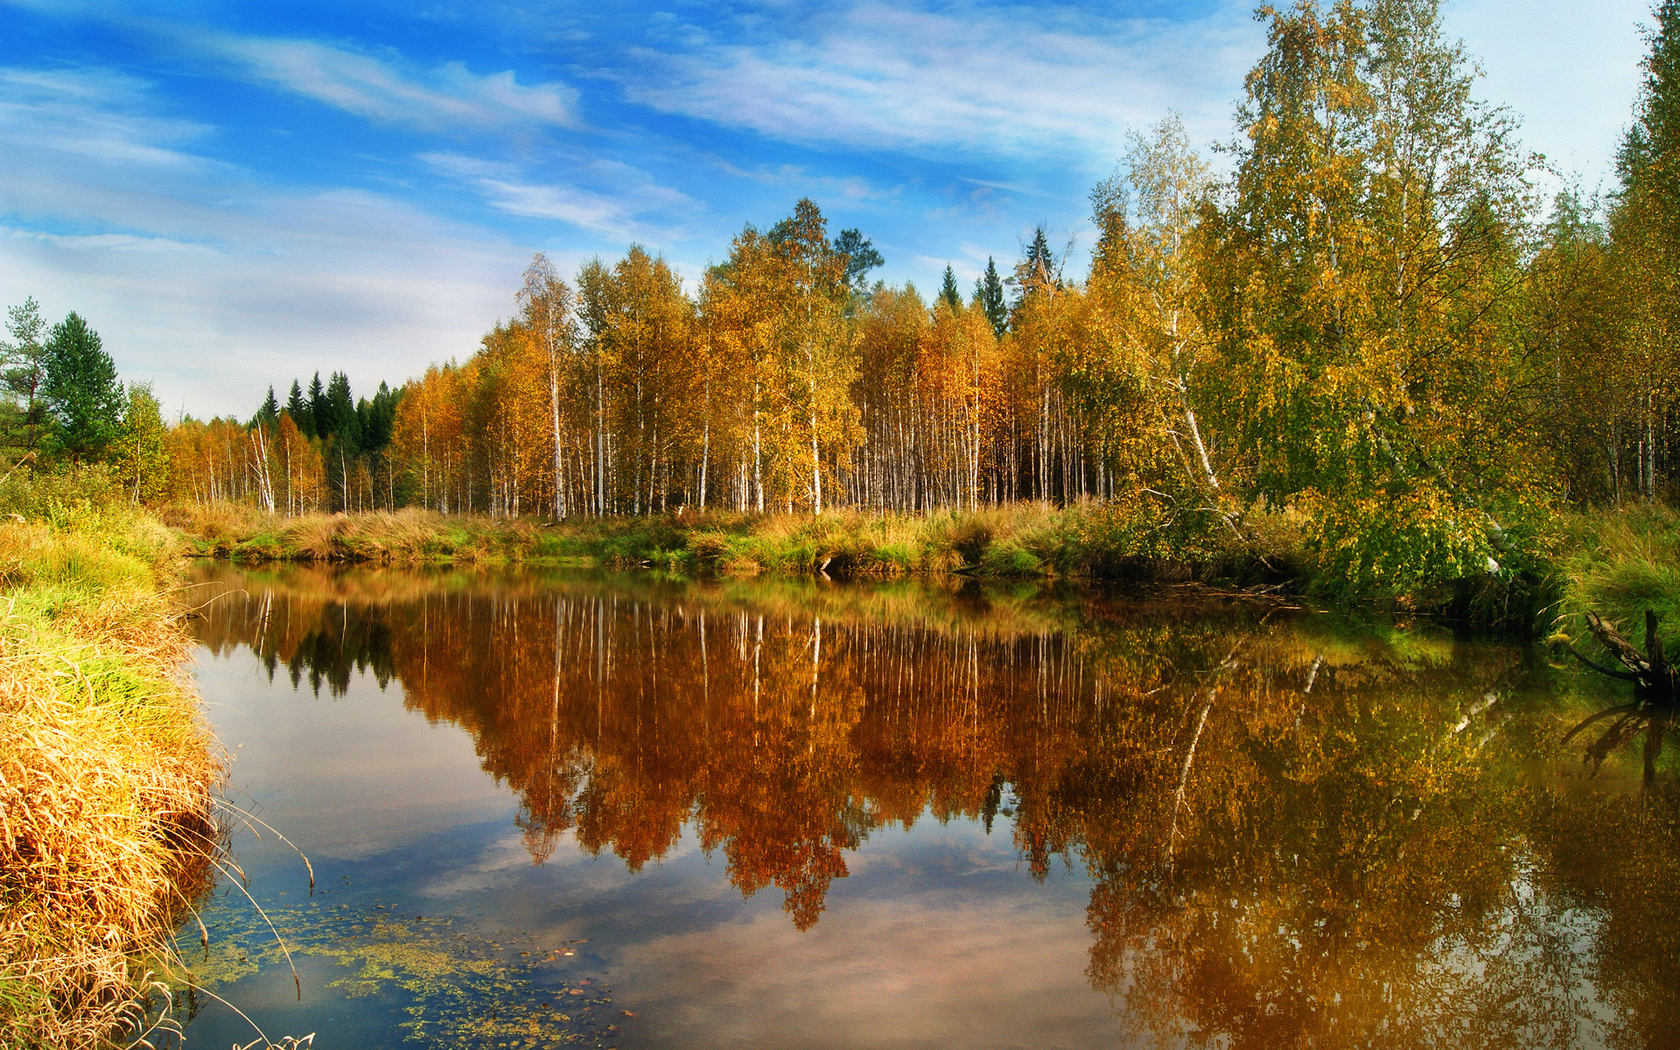 28243 download wallpaper Landscape, Rivers, Trees, Autumn screensavers and pictures for free